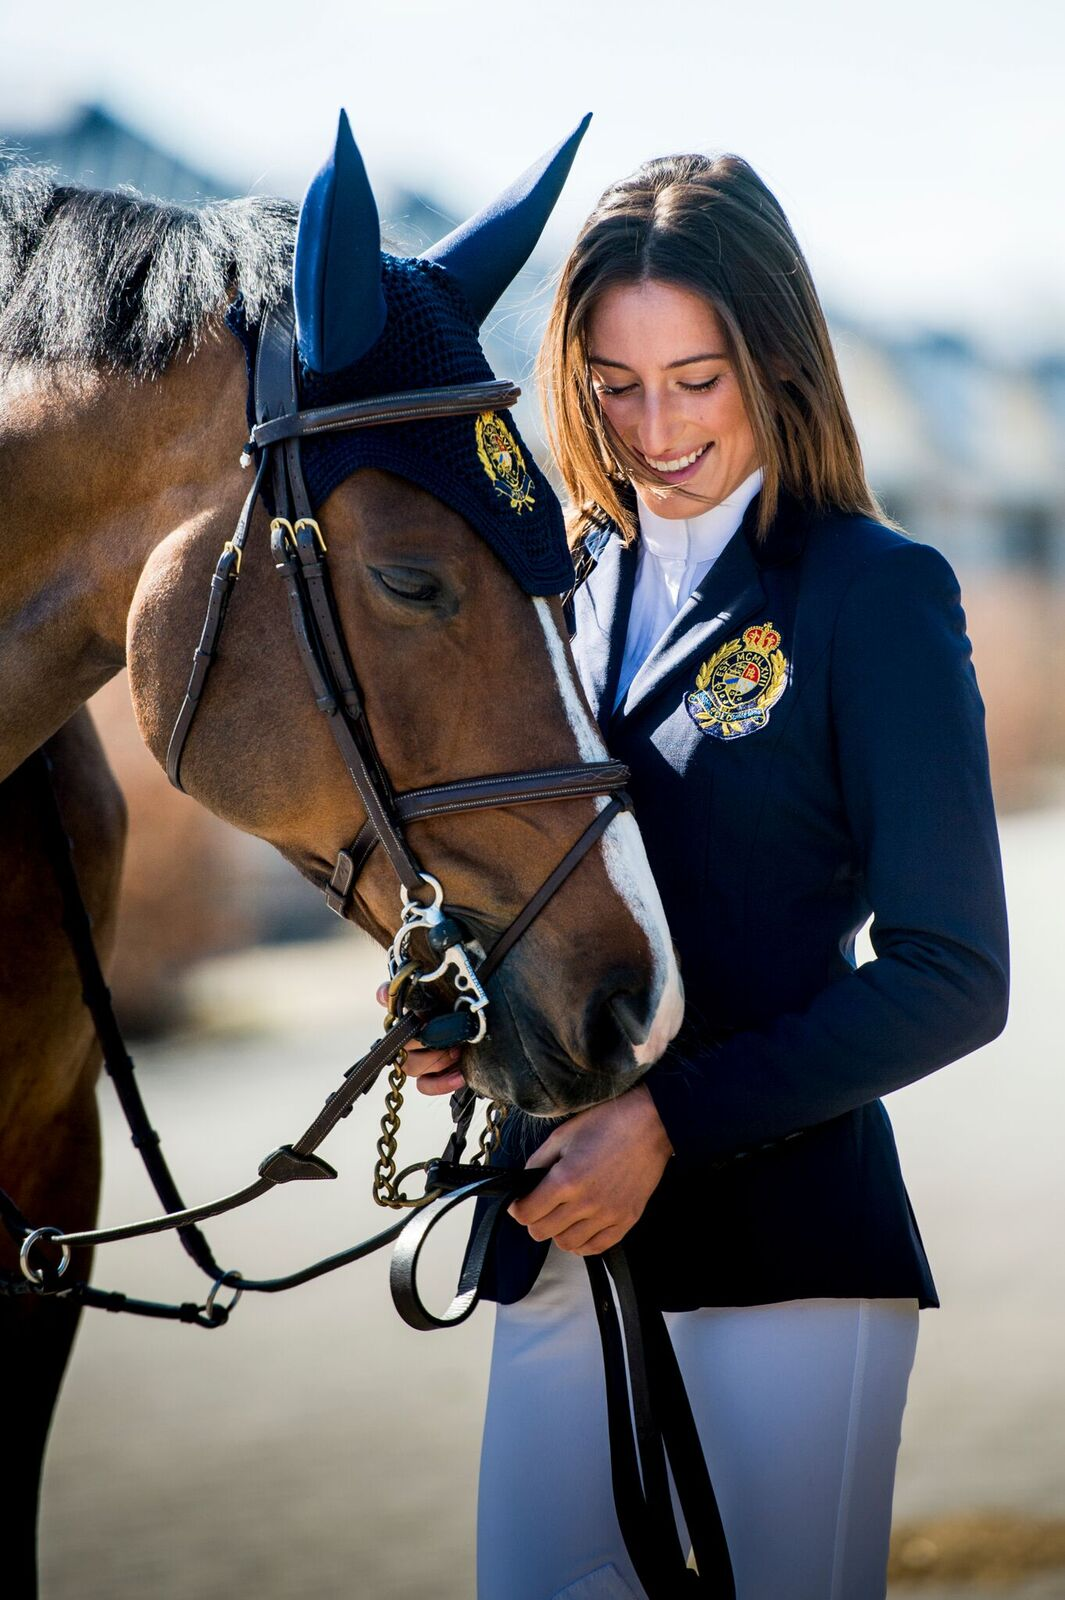 Wishing new #Polo brand ambassador Jessica Springsteen the best of luck in Hamburg tomorrow https://t.co/D0h6nrDFQj